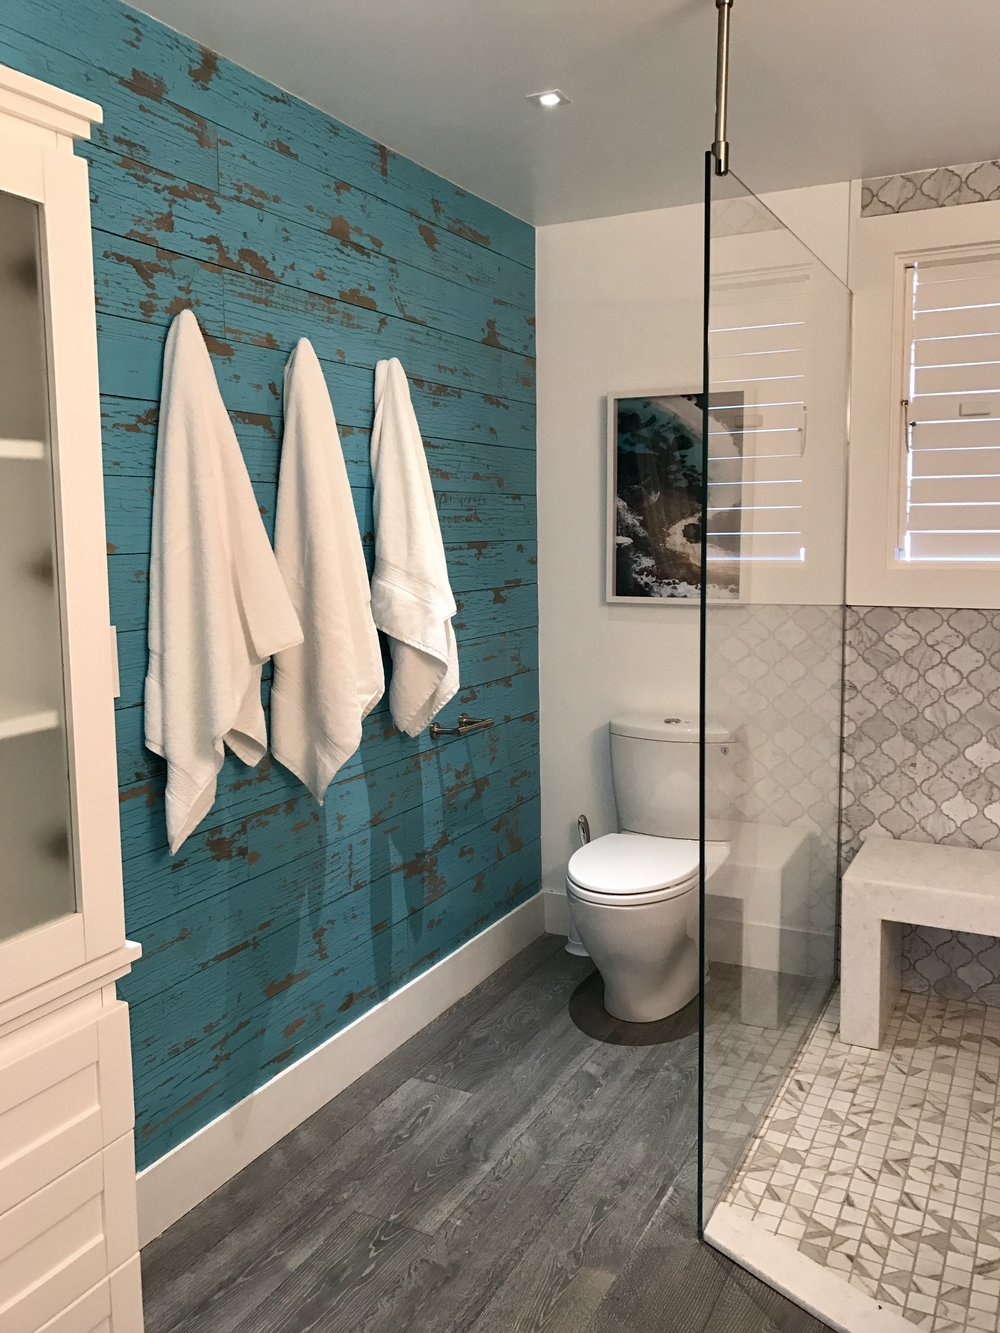 Bathroom designed and styled by Charmaine B Werth. Photo courtesy of Charmaine B Werth